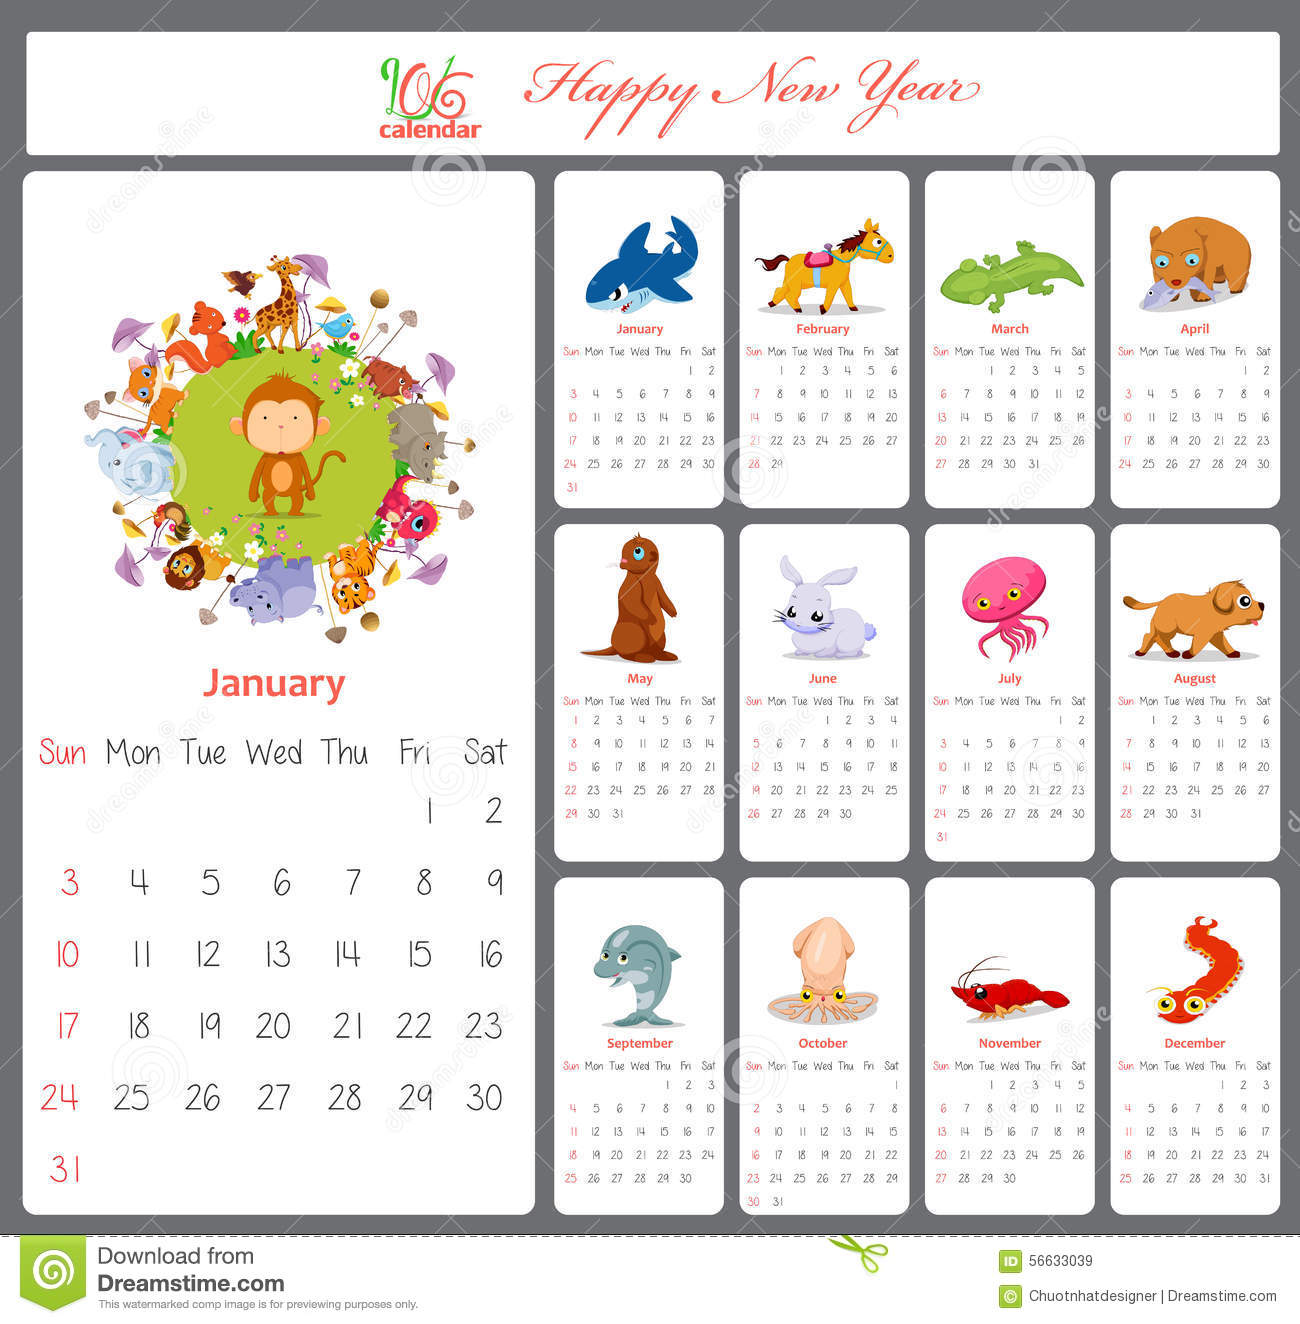 Unusual Calendar For 2016 With Cartoon And Funny Animals ...